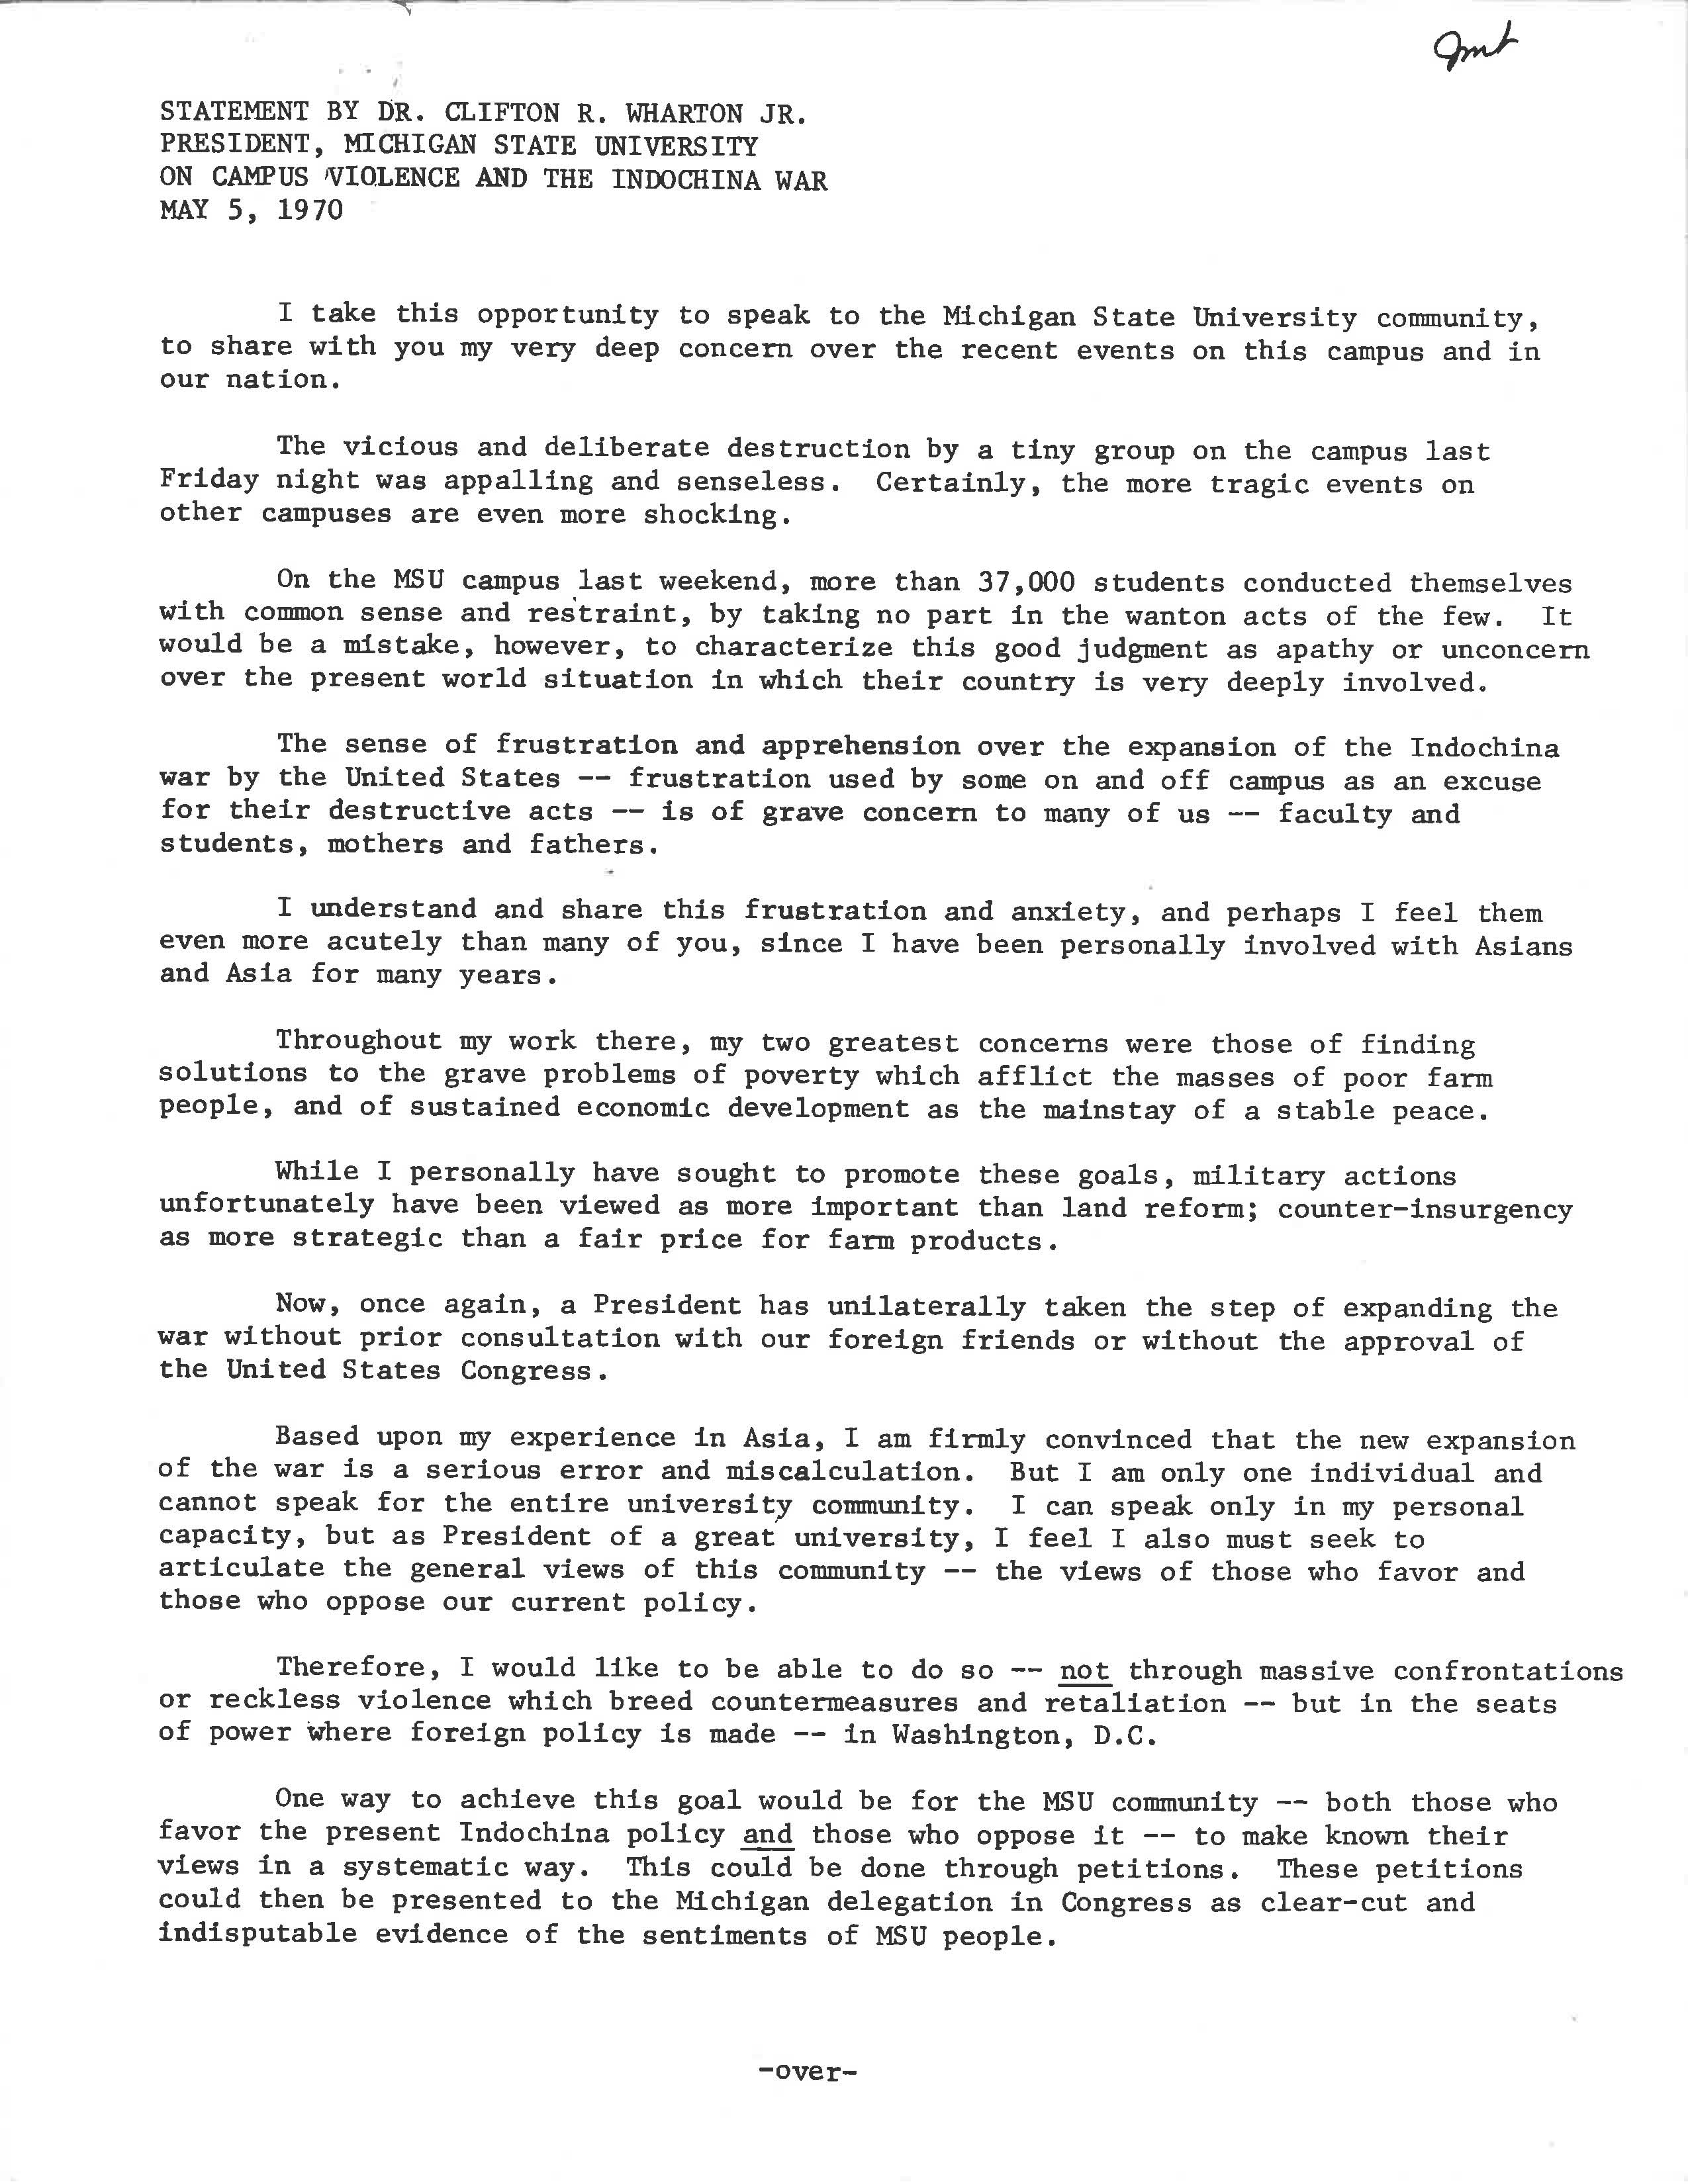 Vietnam War Statement from President Wharton